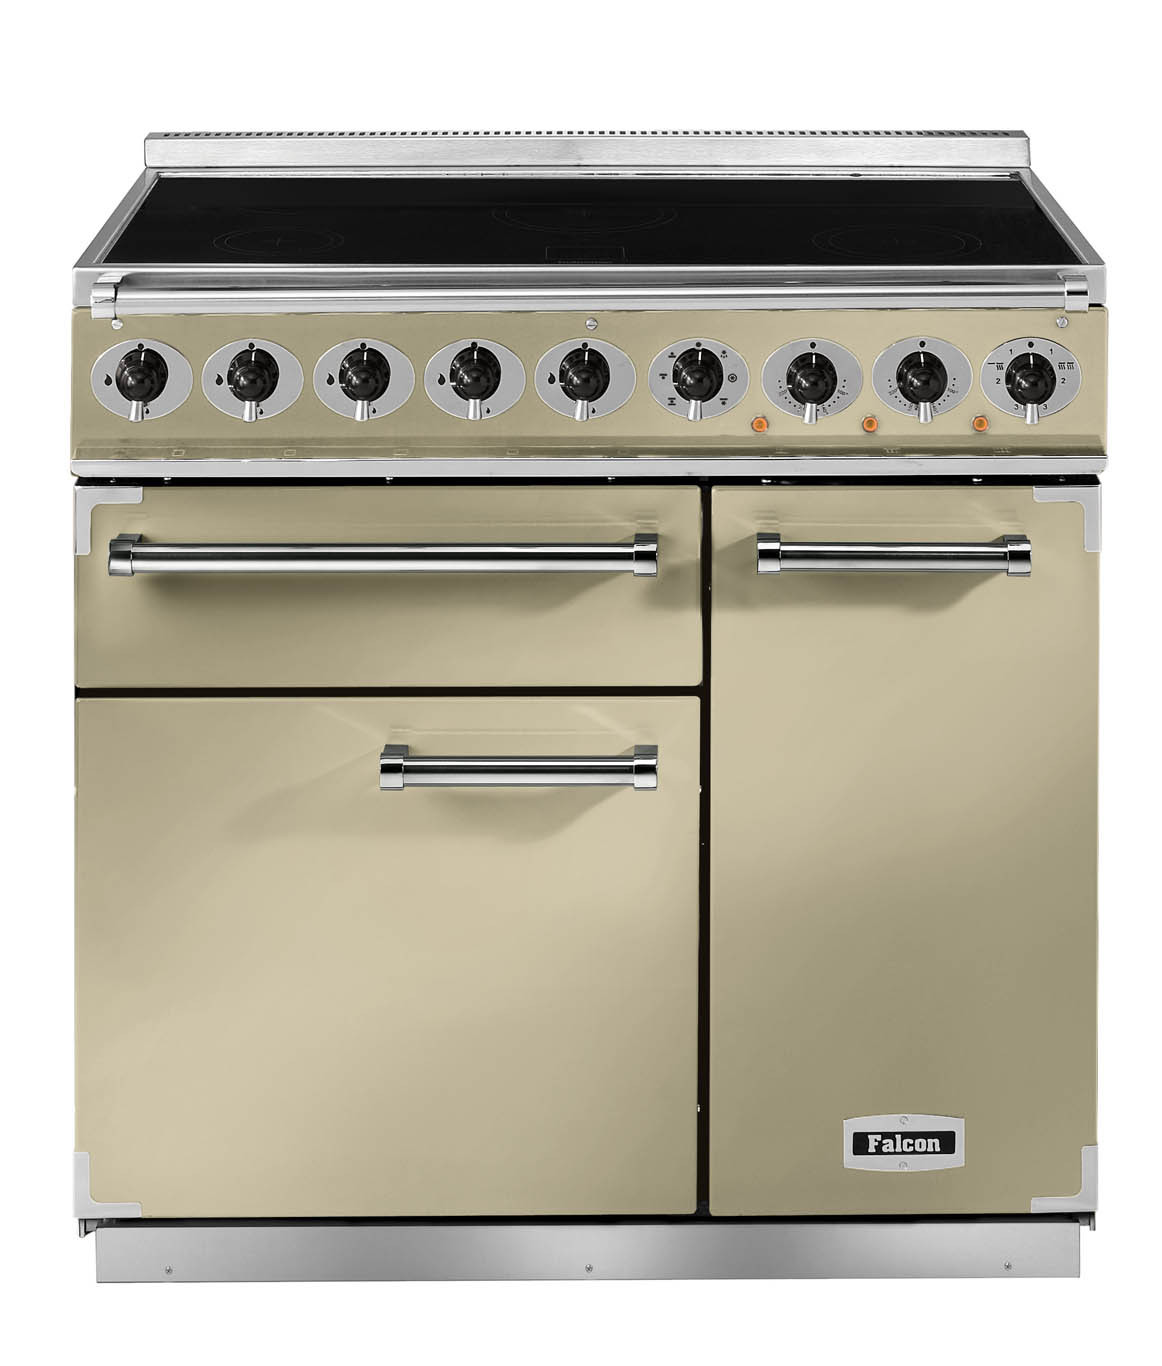 Falcon Deluxe 900 Induction Cream/Chrome Range Cooker